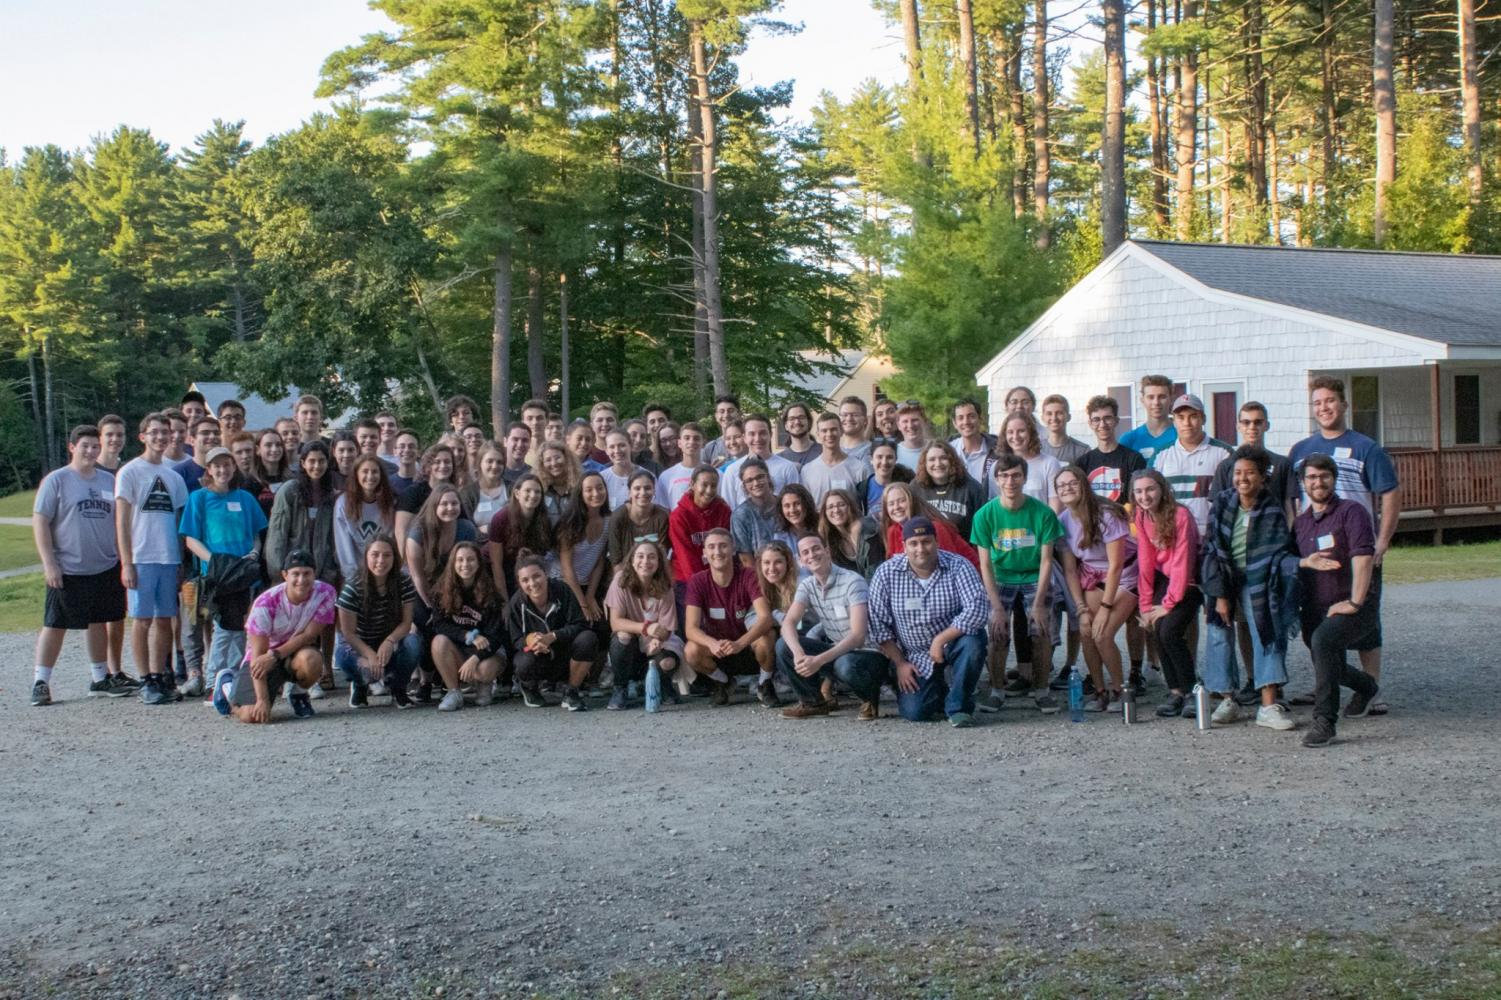 Over 60 freshmen participated in Hillel's Freshfest at Camp Ramah.